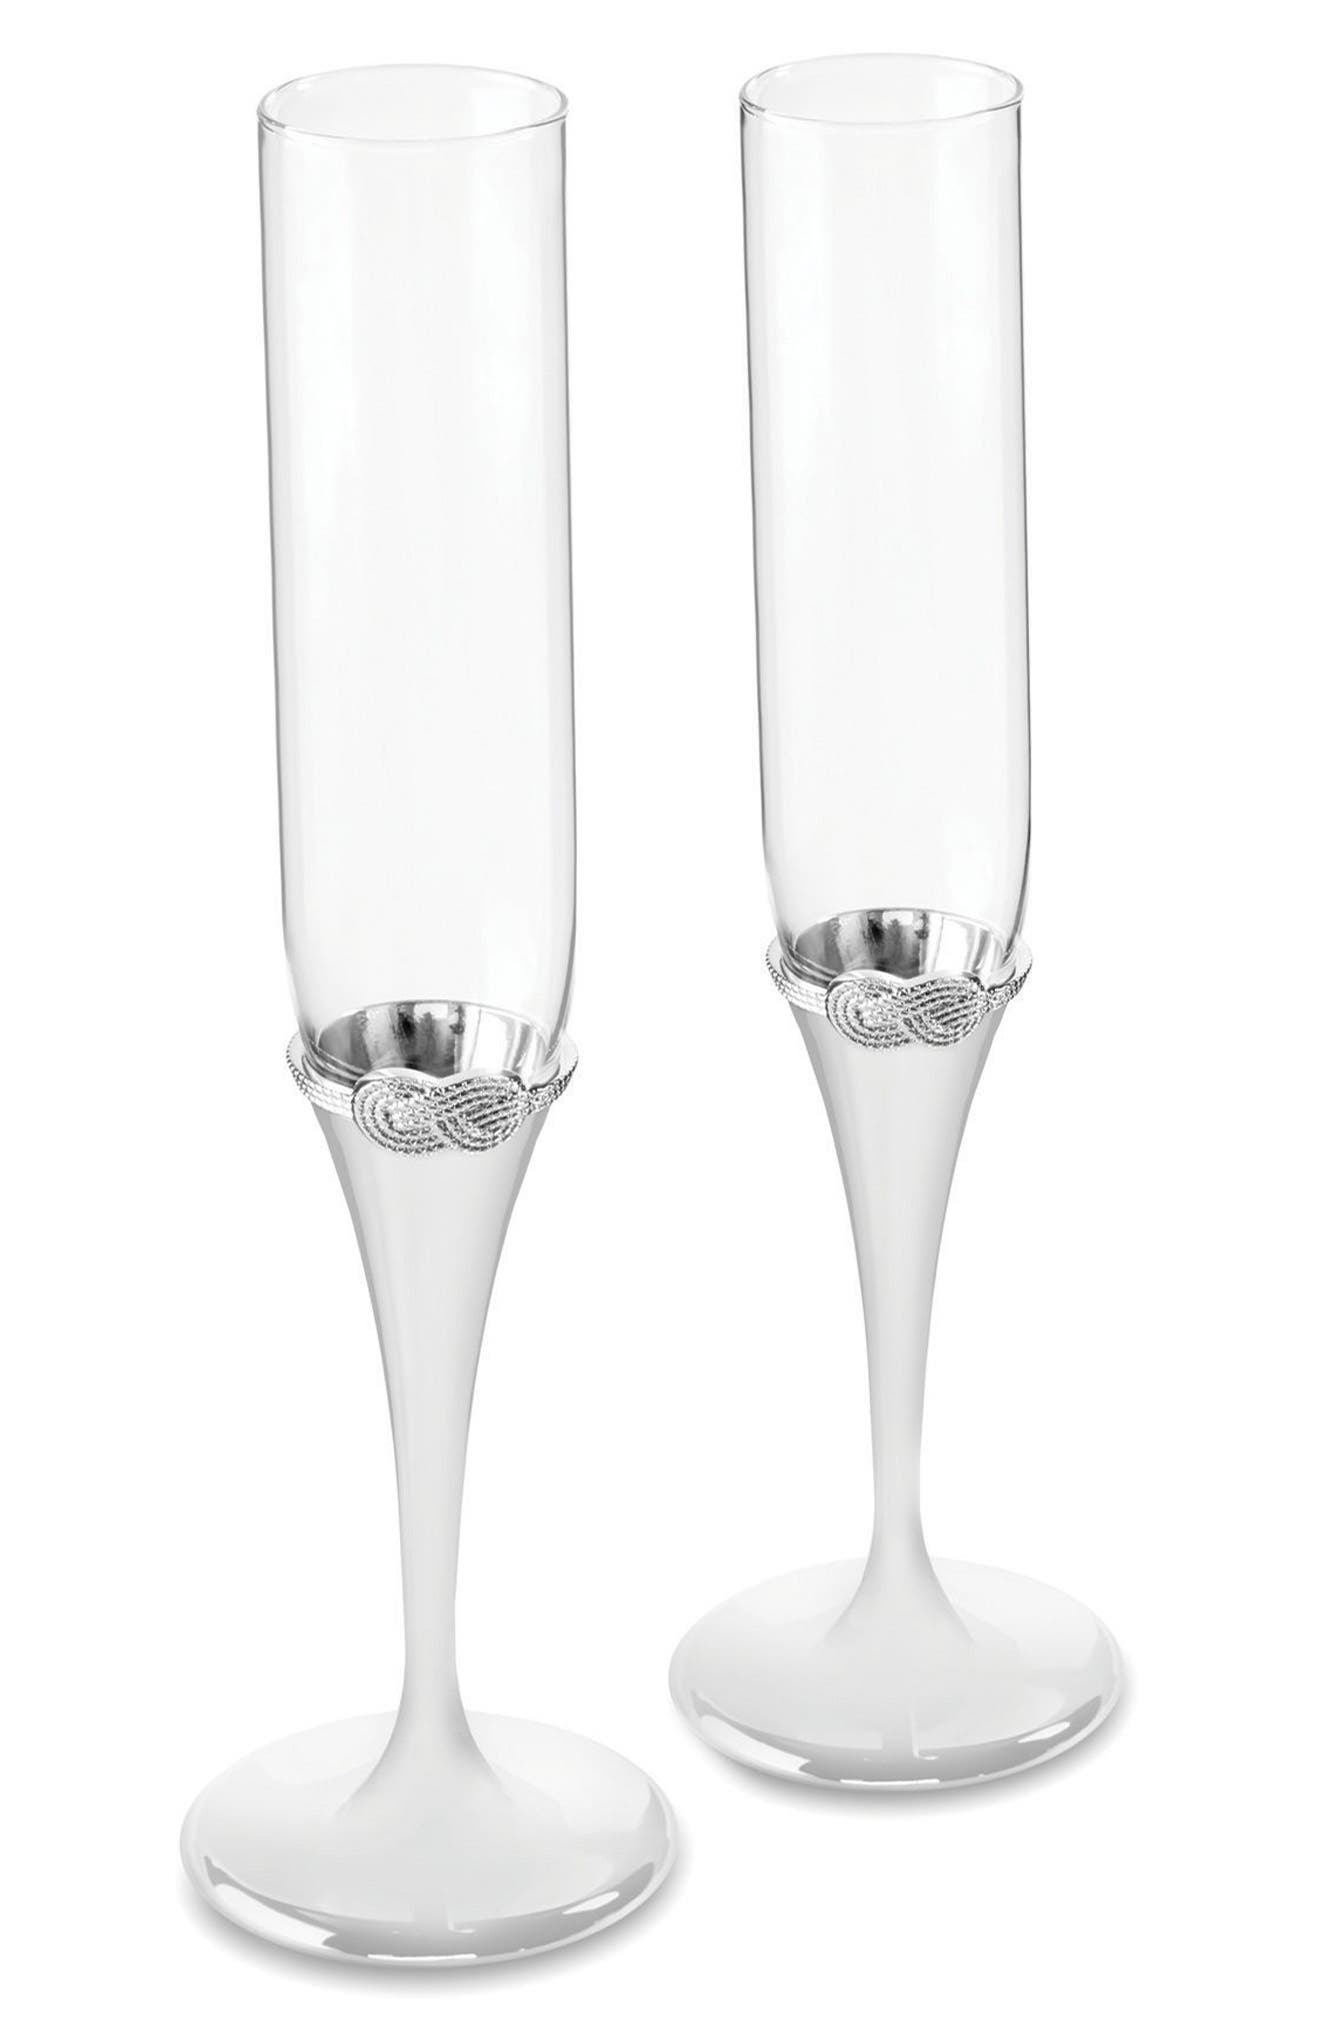 Vera Wang x Wedgwood Infinity Set of 2 Toasting Flutes